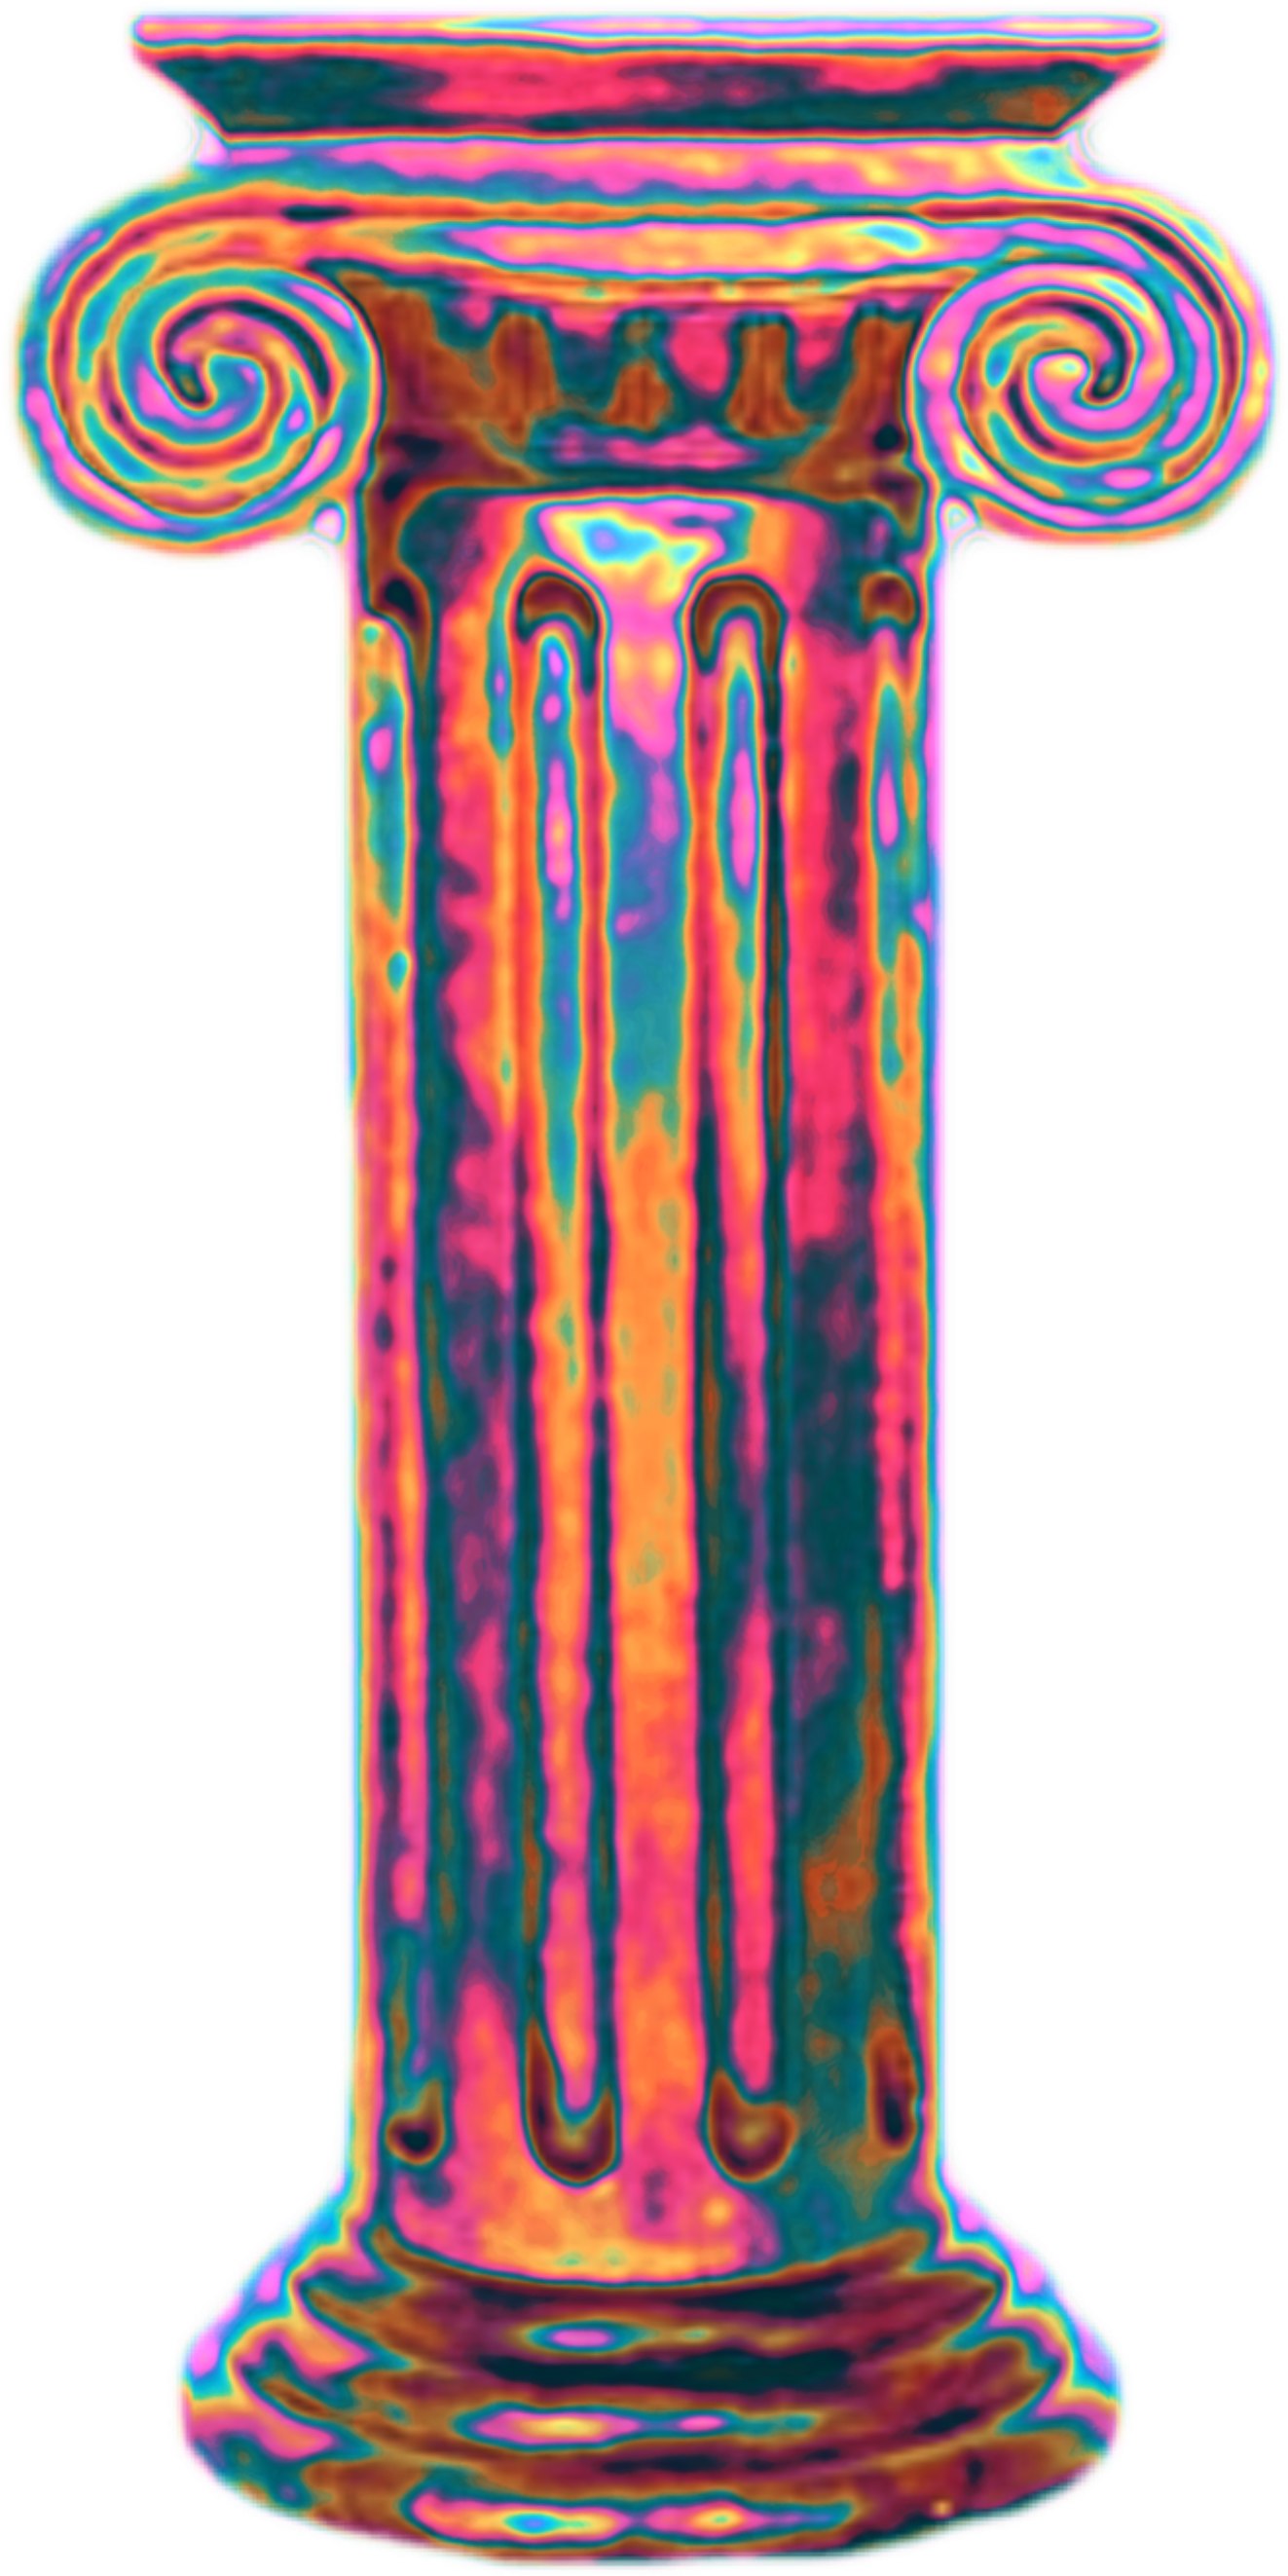 Column Greek Roman Holo Holographic Vaporwave Aesthetic Vaporwave Png Transparent Cartoon Jing Fm Large collections of hd transparent vaporwave png images for free download. column greek roman holo holographic